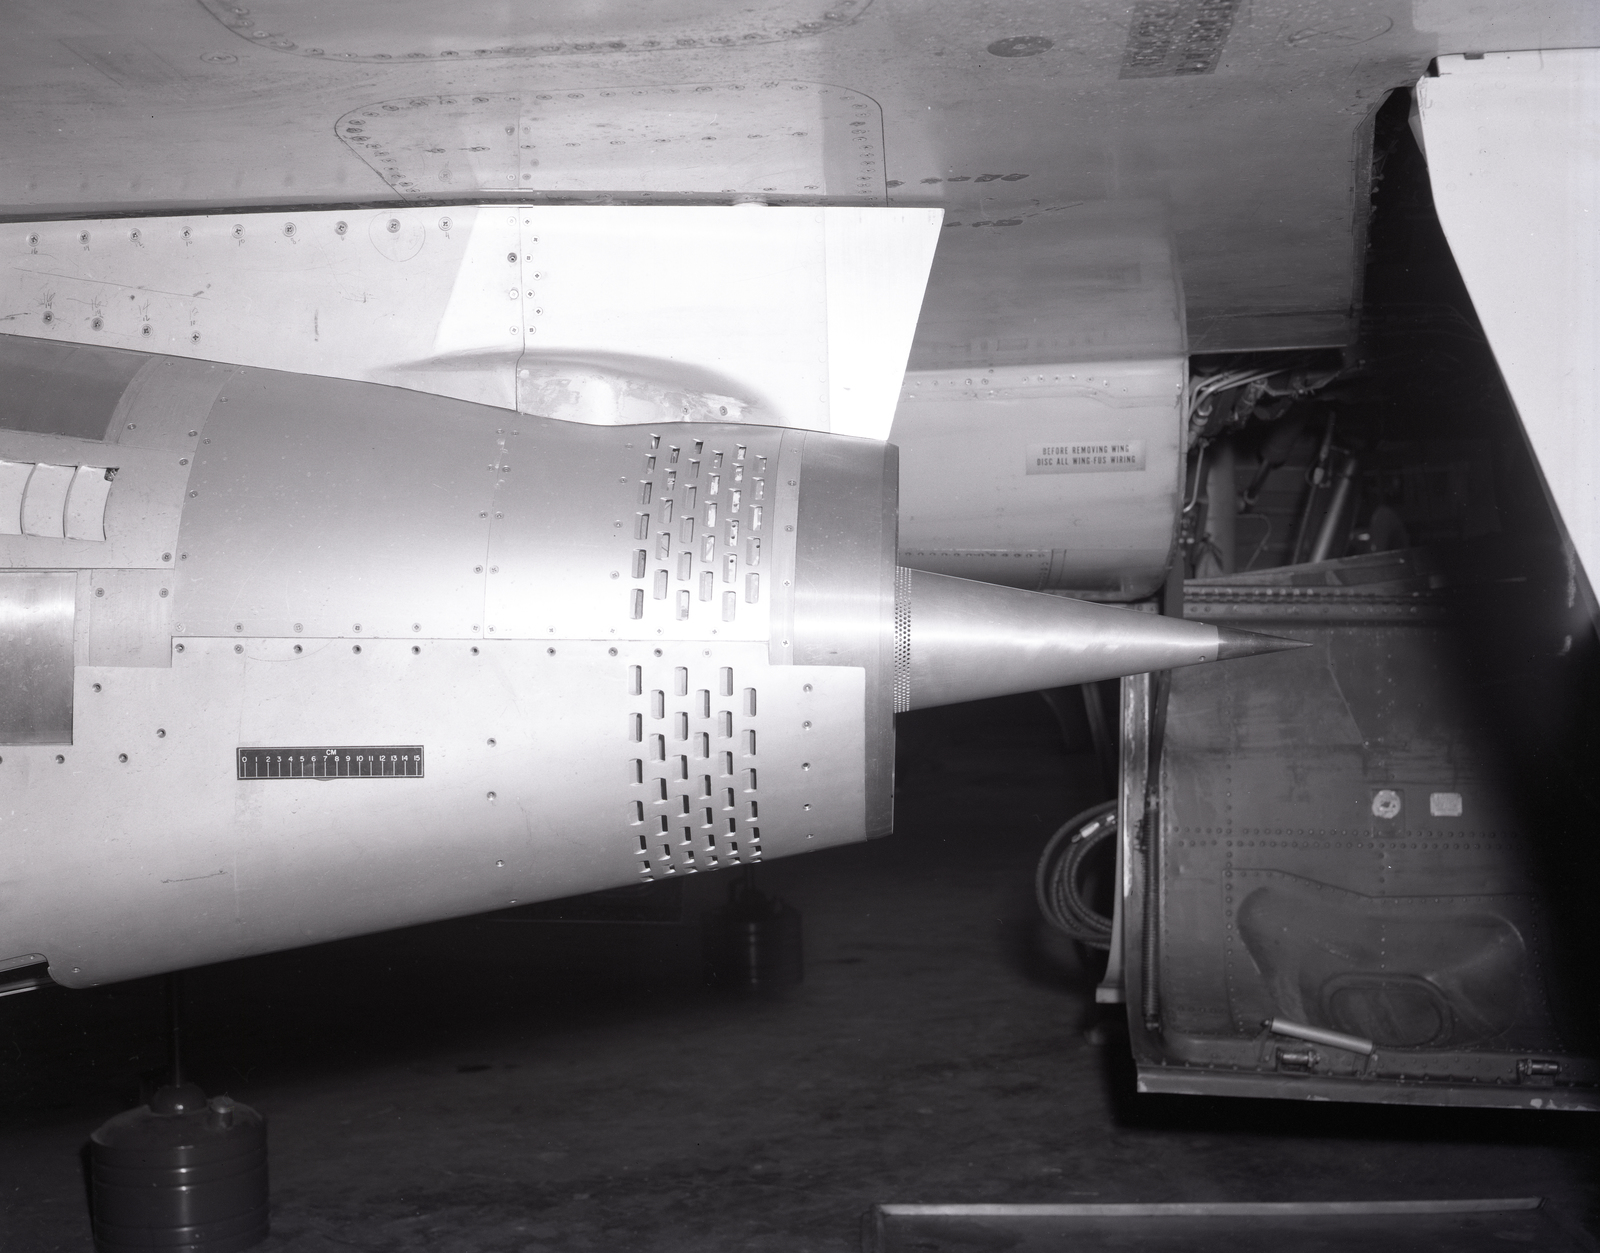 NOZZLES AND AN INLET ON THE F-106 AIRPLANE